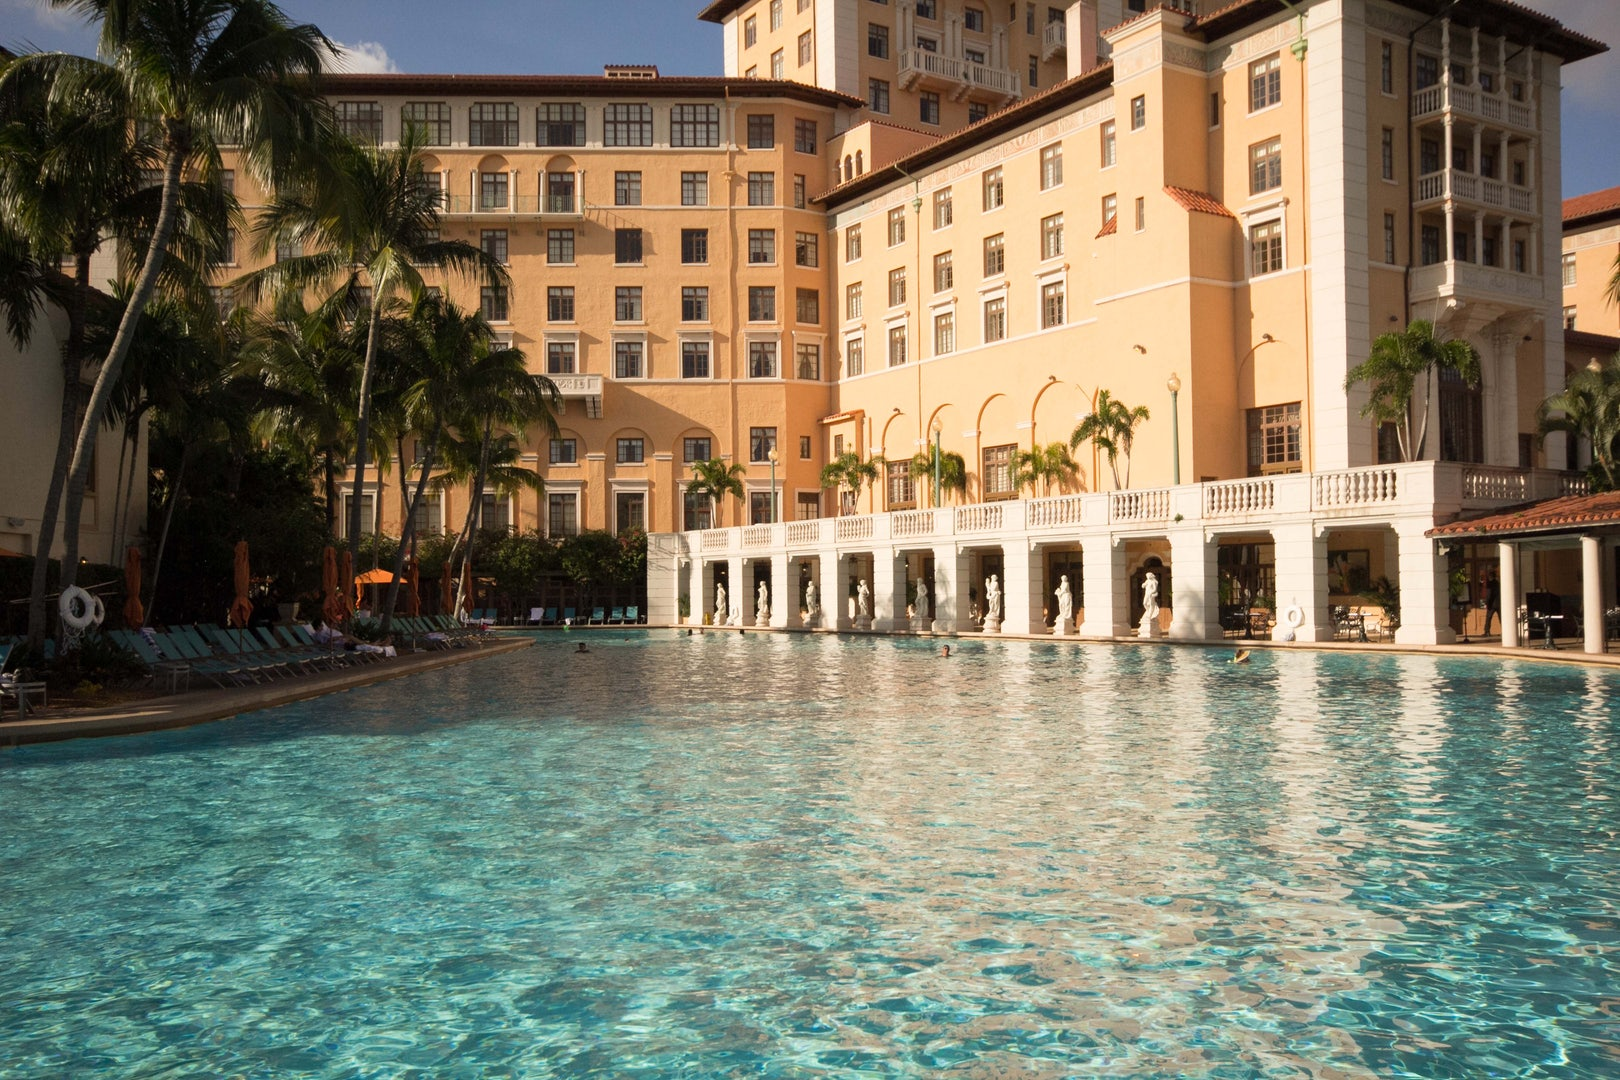 clear blue swimming pool at the Biltmore hotel